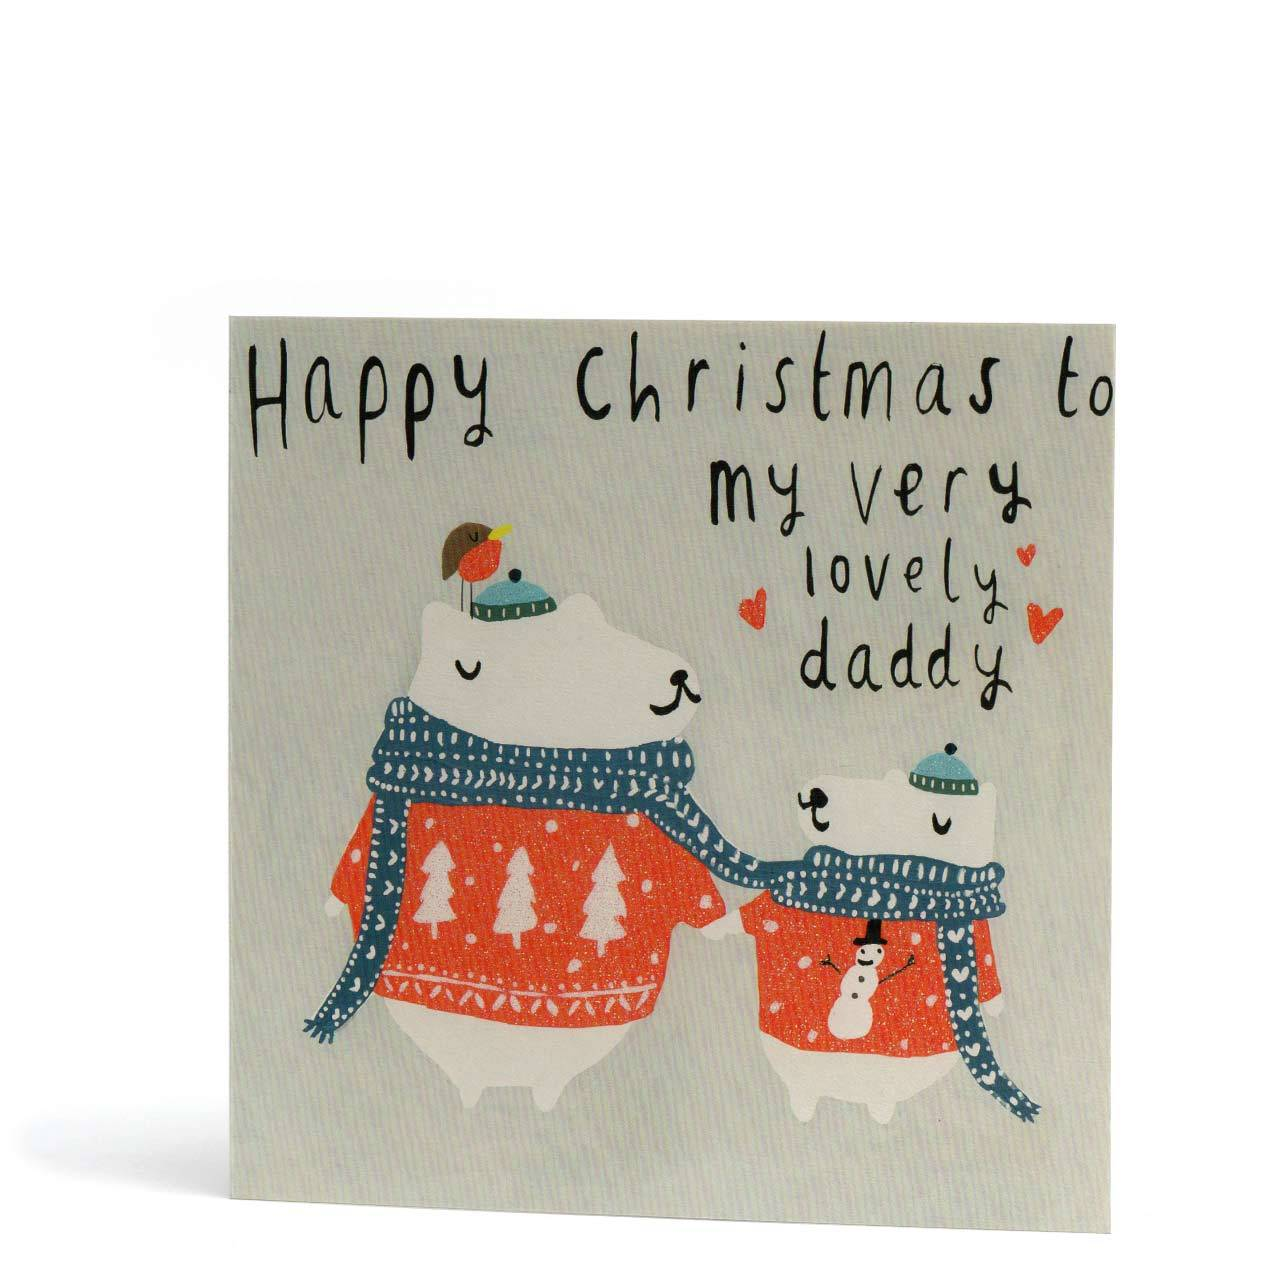 Lovely Daddy Christmas Greeting Card